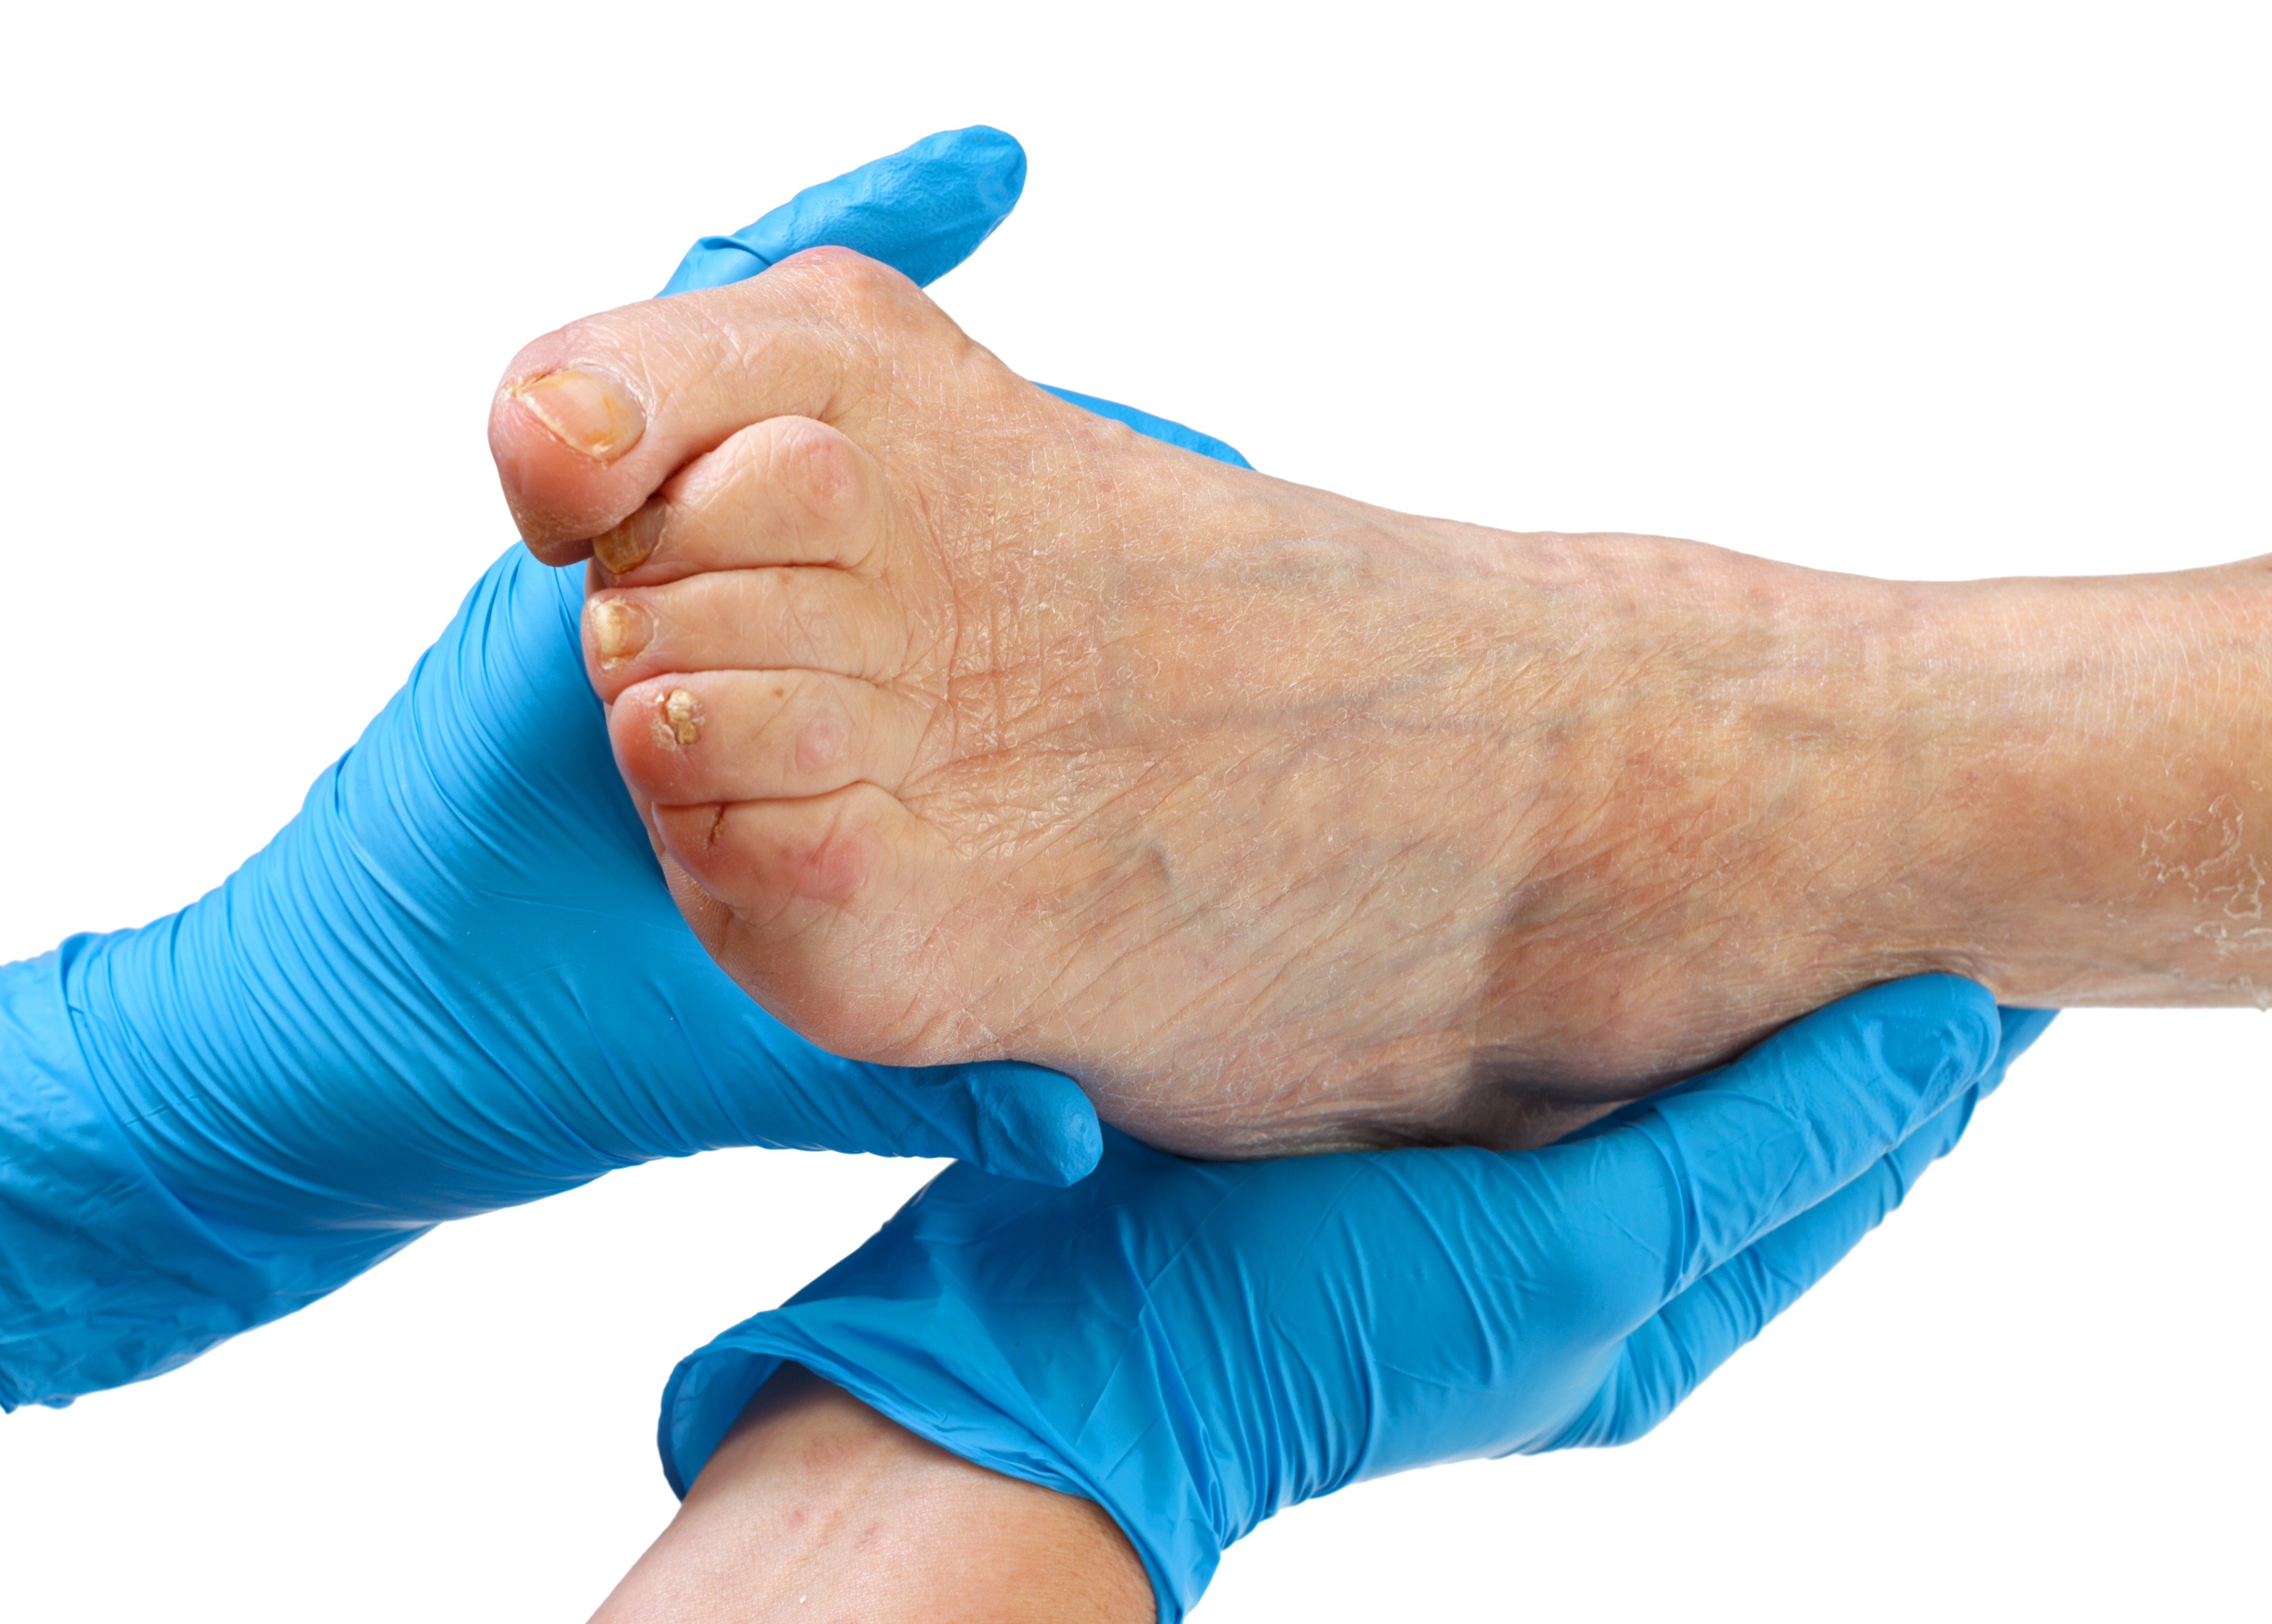 Is Ankle and Leg Swelling 'Normal'?